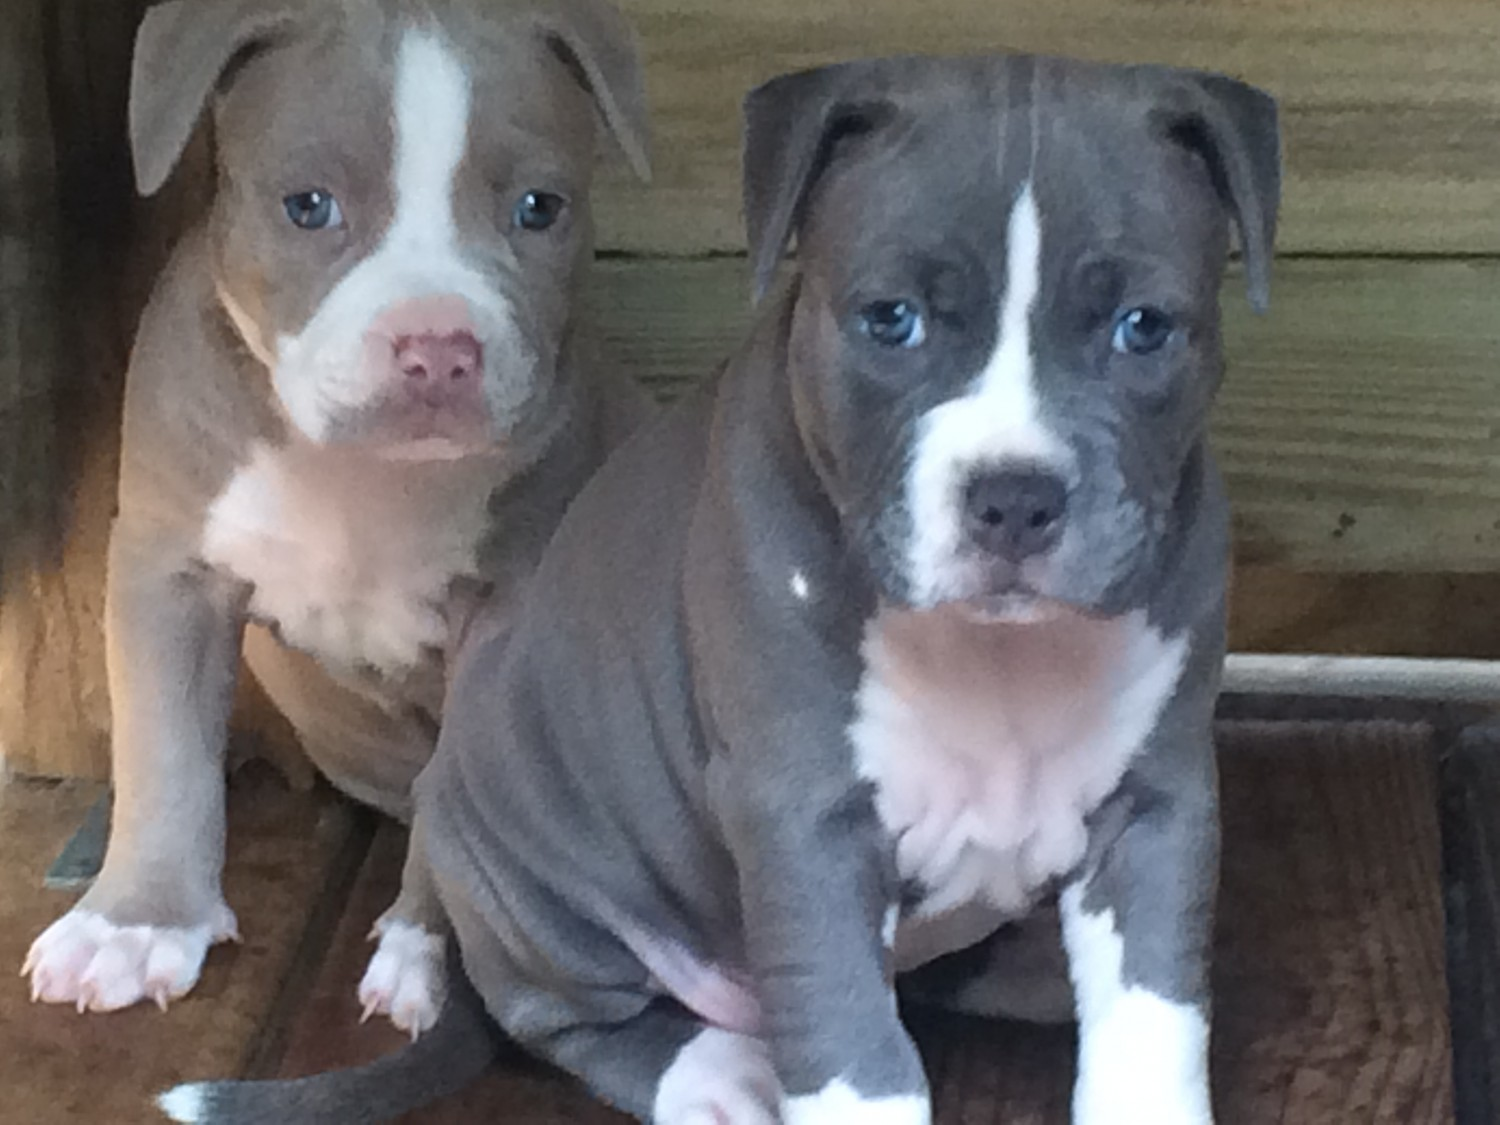 Blue nose pitbull puppies | Pitbull puppies for sale In New Zealand